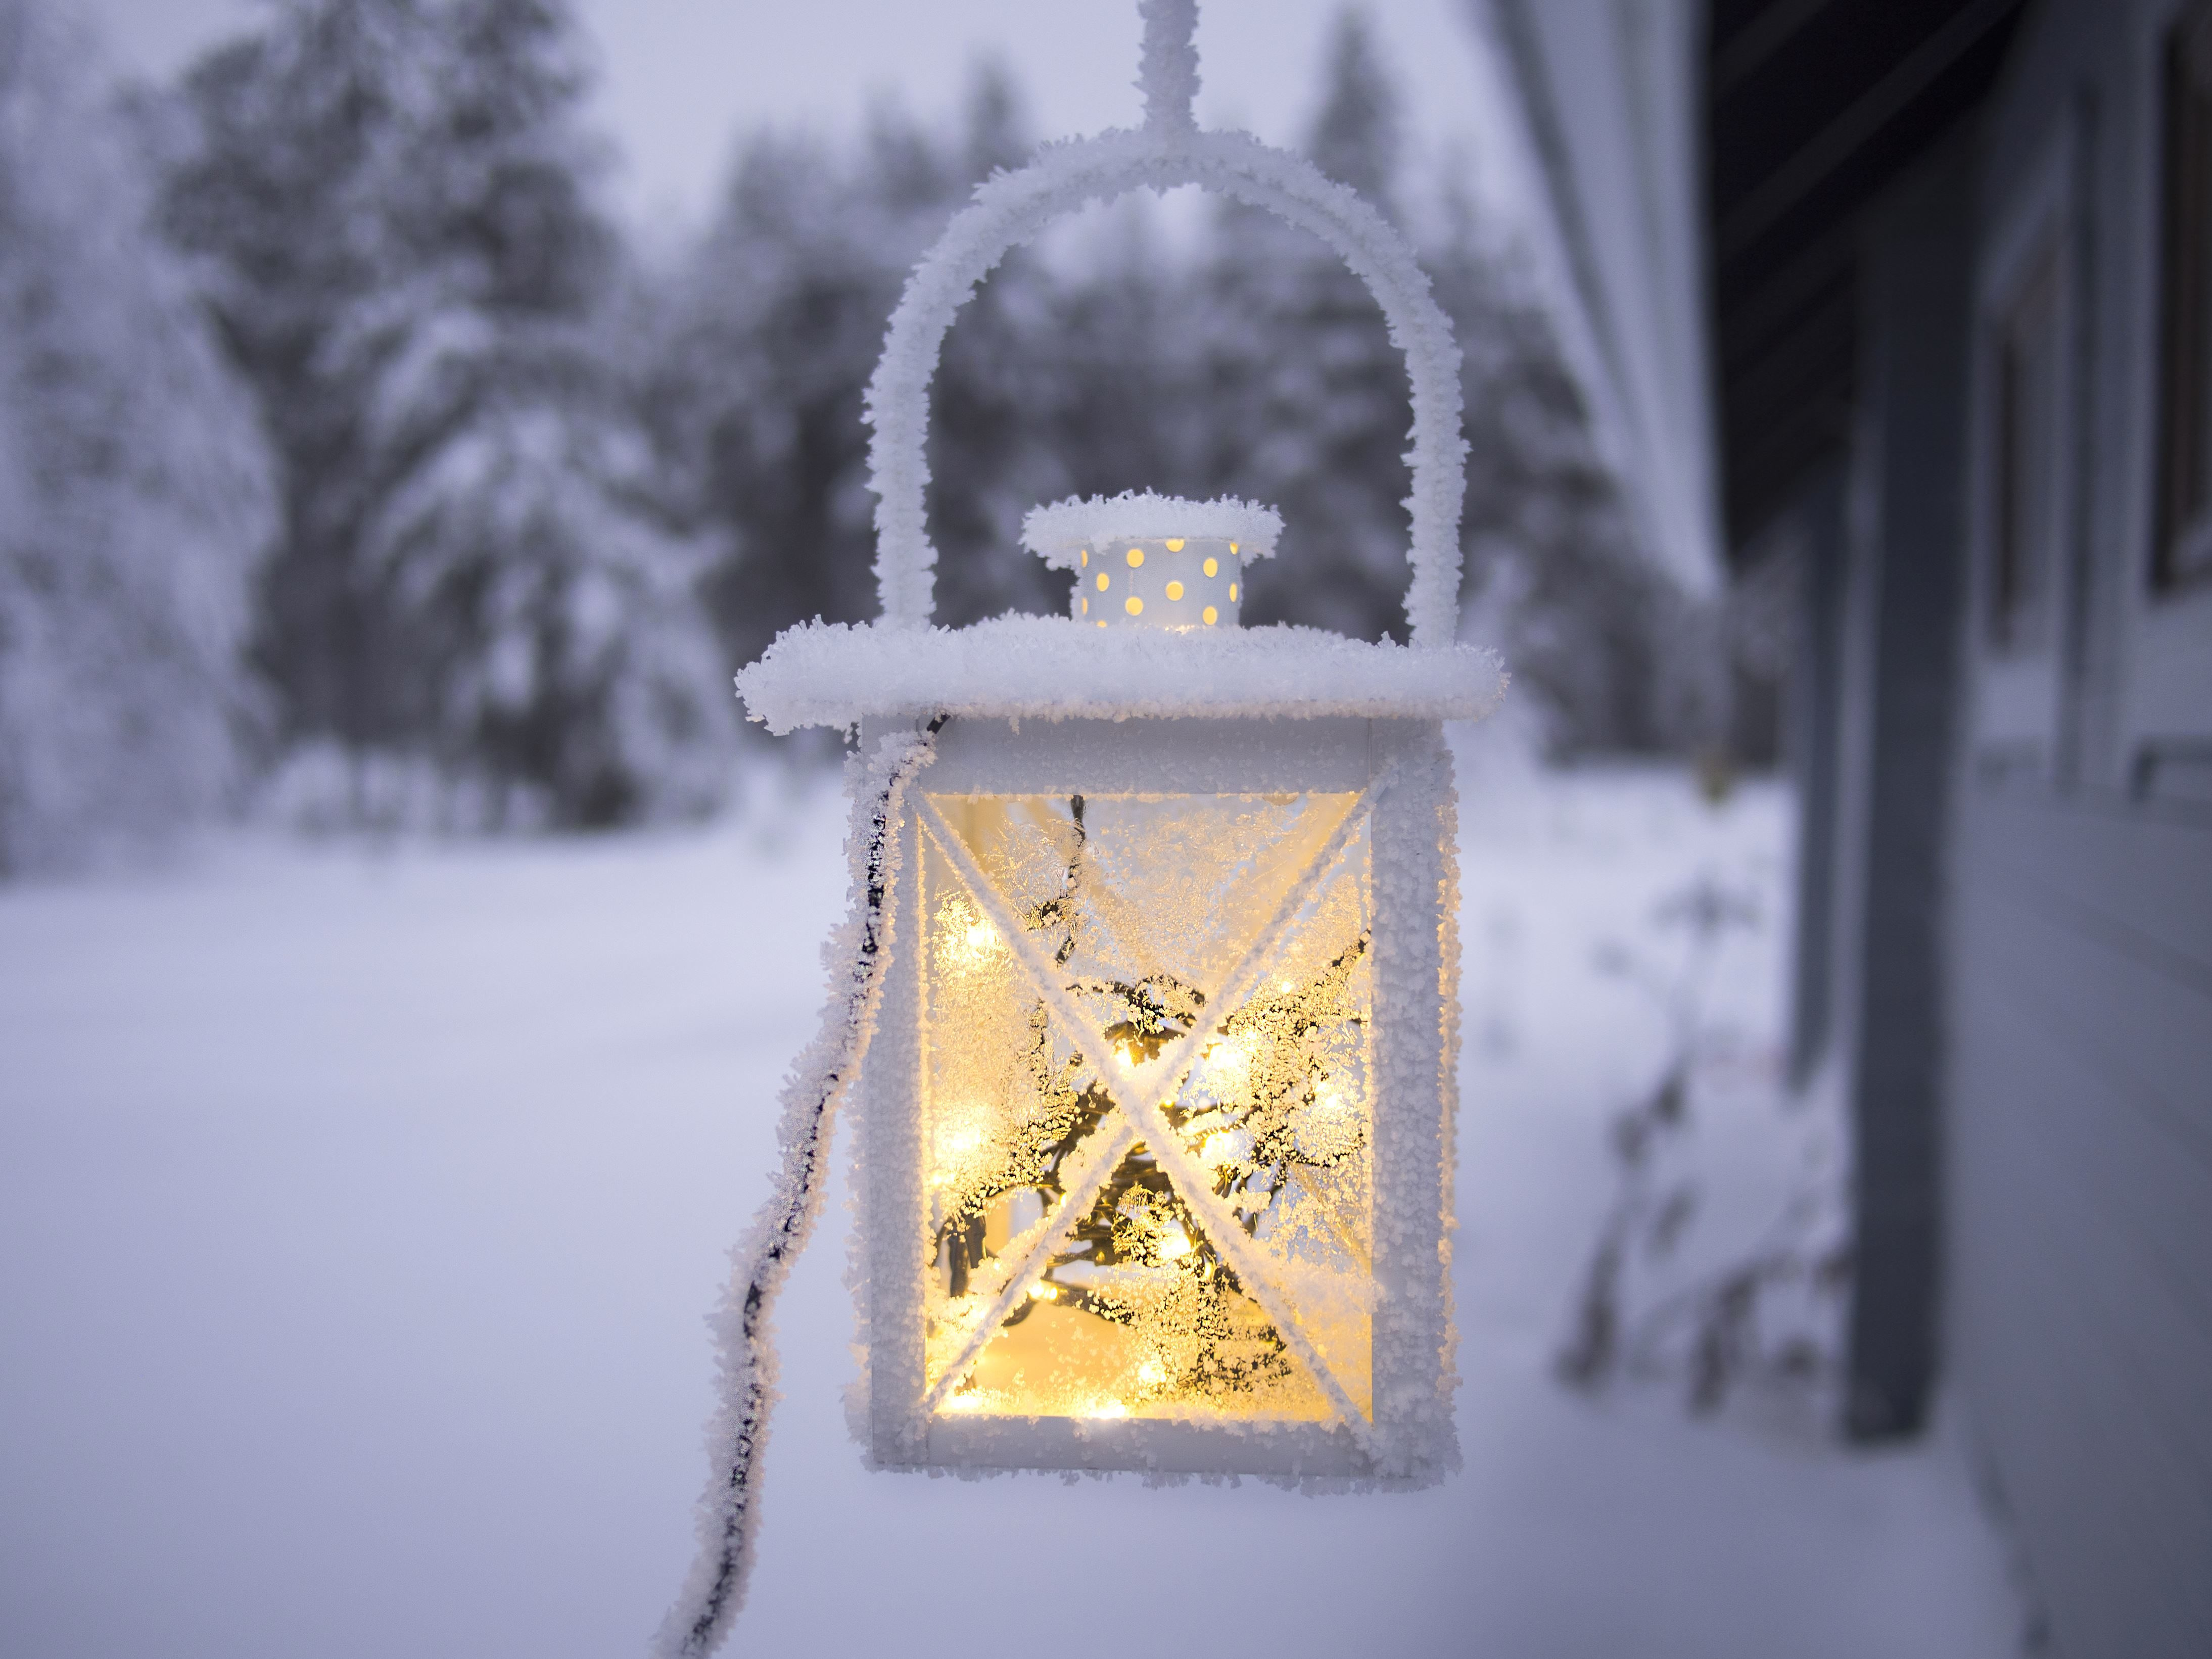 Free picture: snow, tree, winter, lamp, frost, frozen, ice